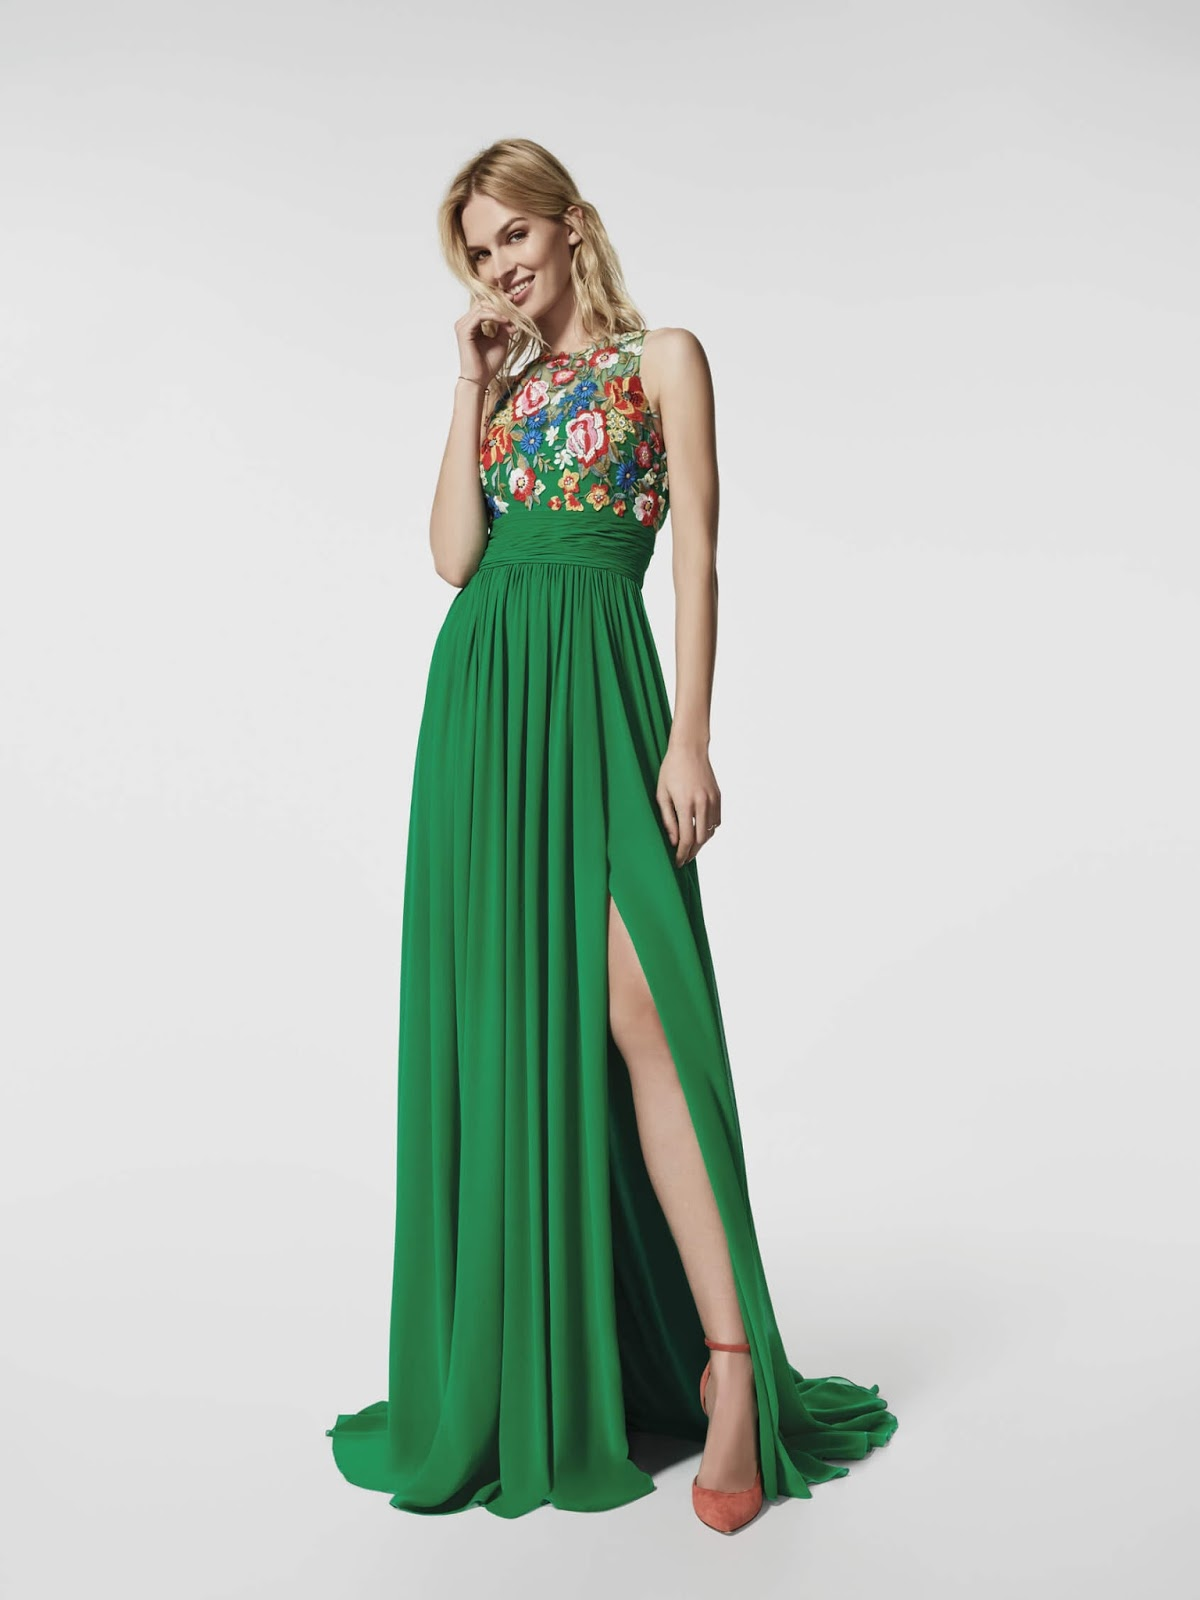 GRIEGA COCKTAIL COLLECTION , DRESSES FOR US WOMEN